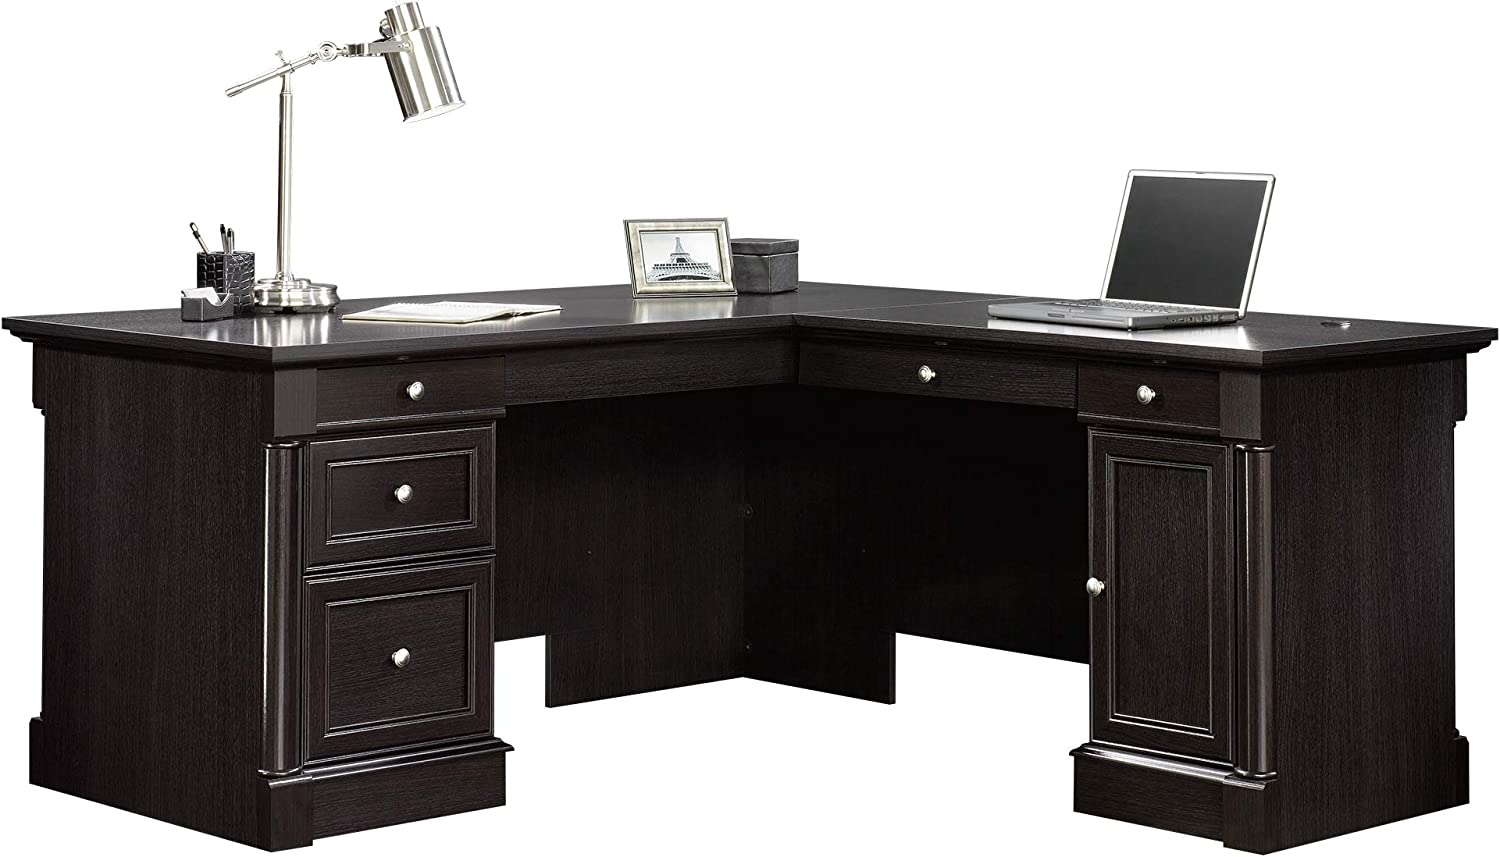 Sauder Palladia L-Desk, Wind Oak finish